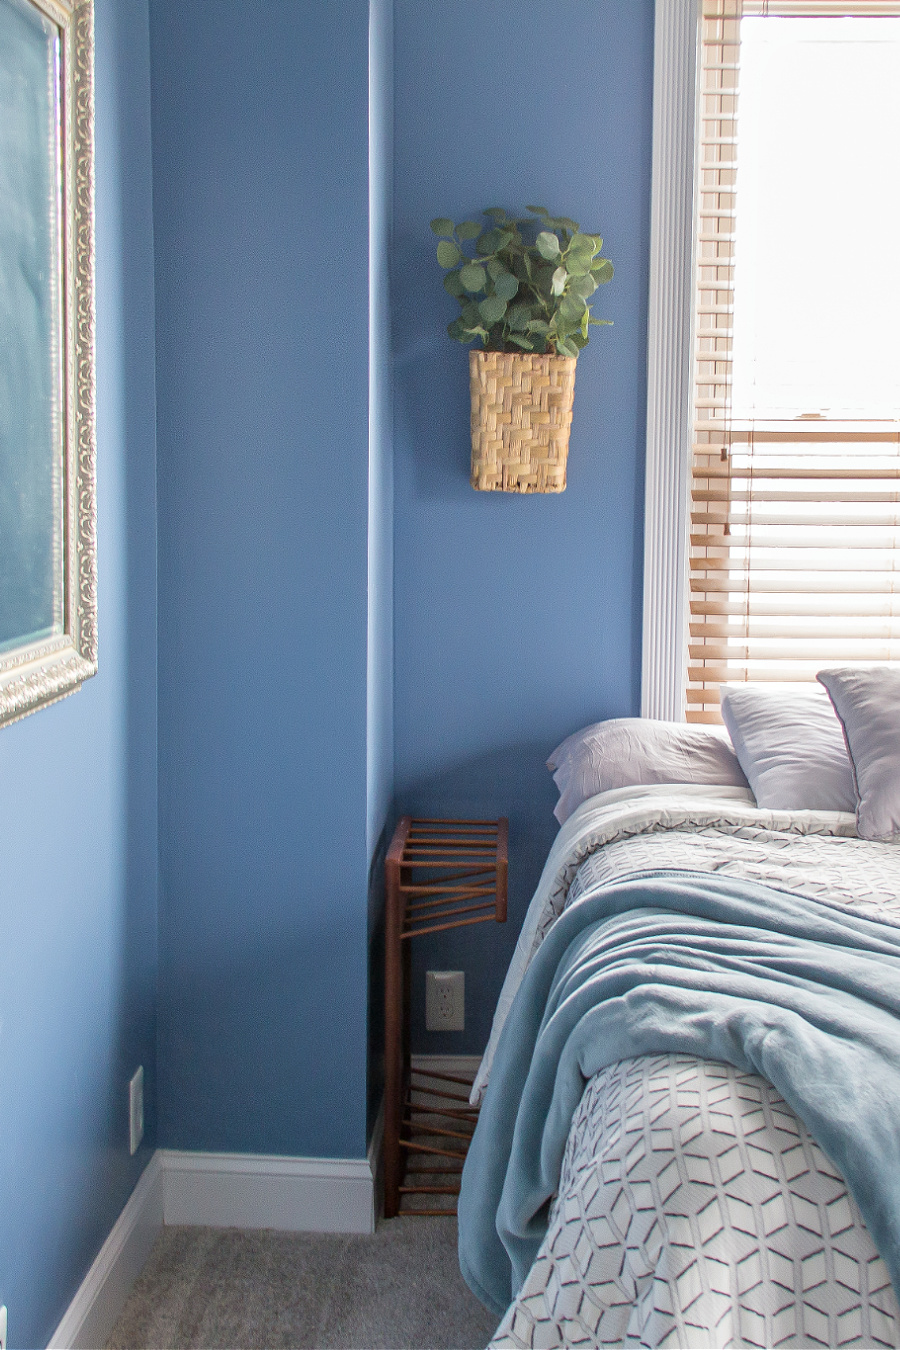 A bed with a TV dinner tray, a basket of greenery on the wall and a throw blanket in a guest bedroom.